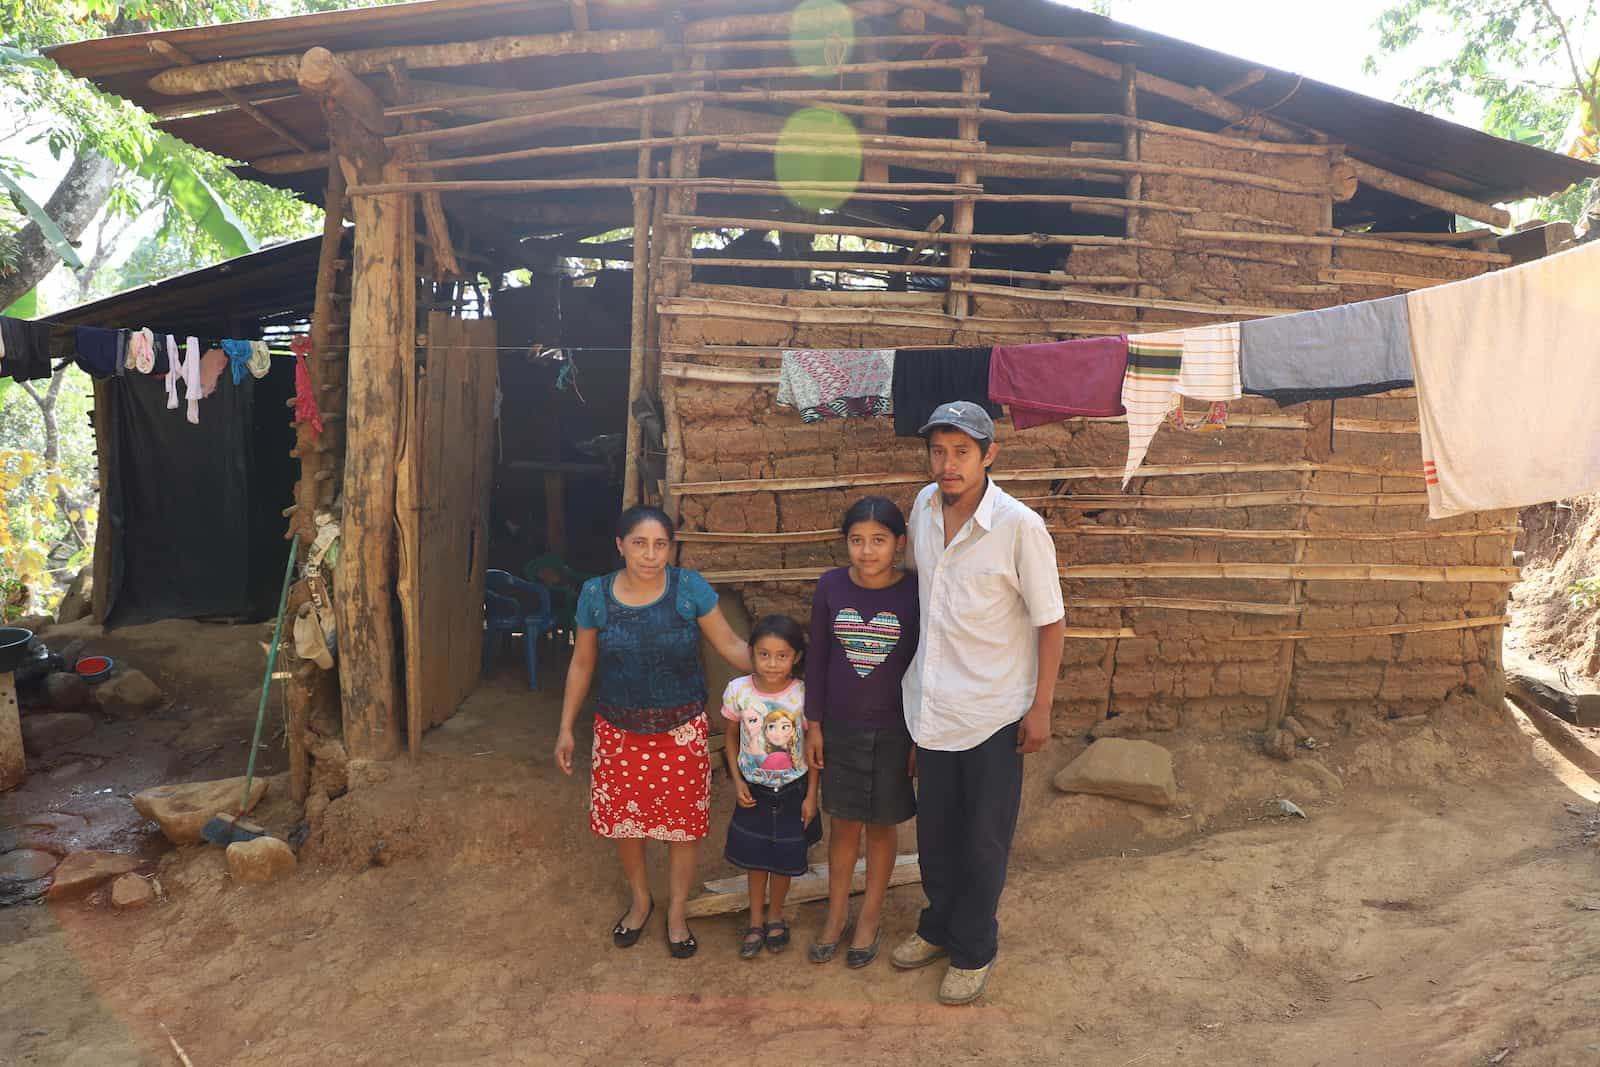 A family stands in front of a mud home in rural El Salvador